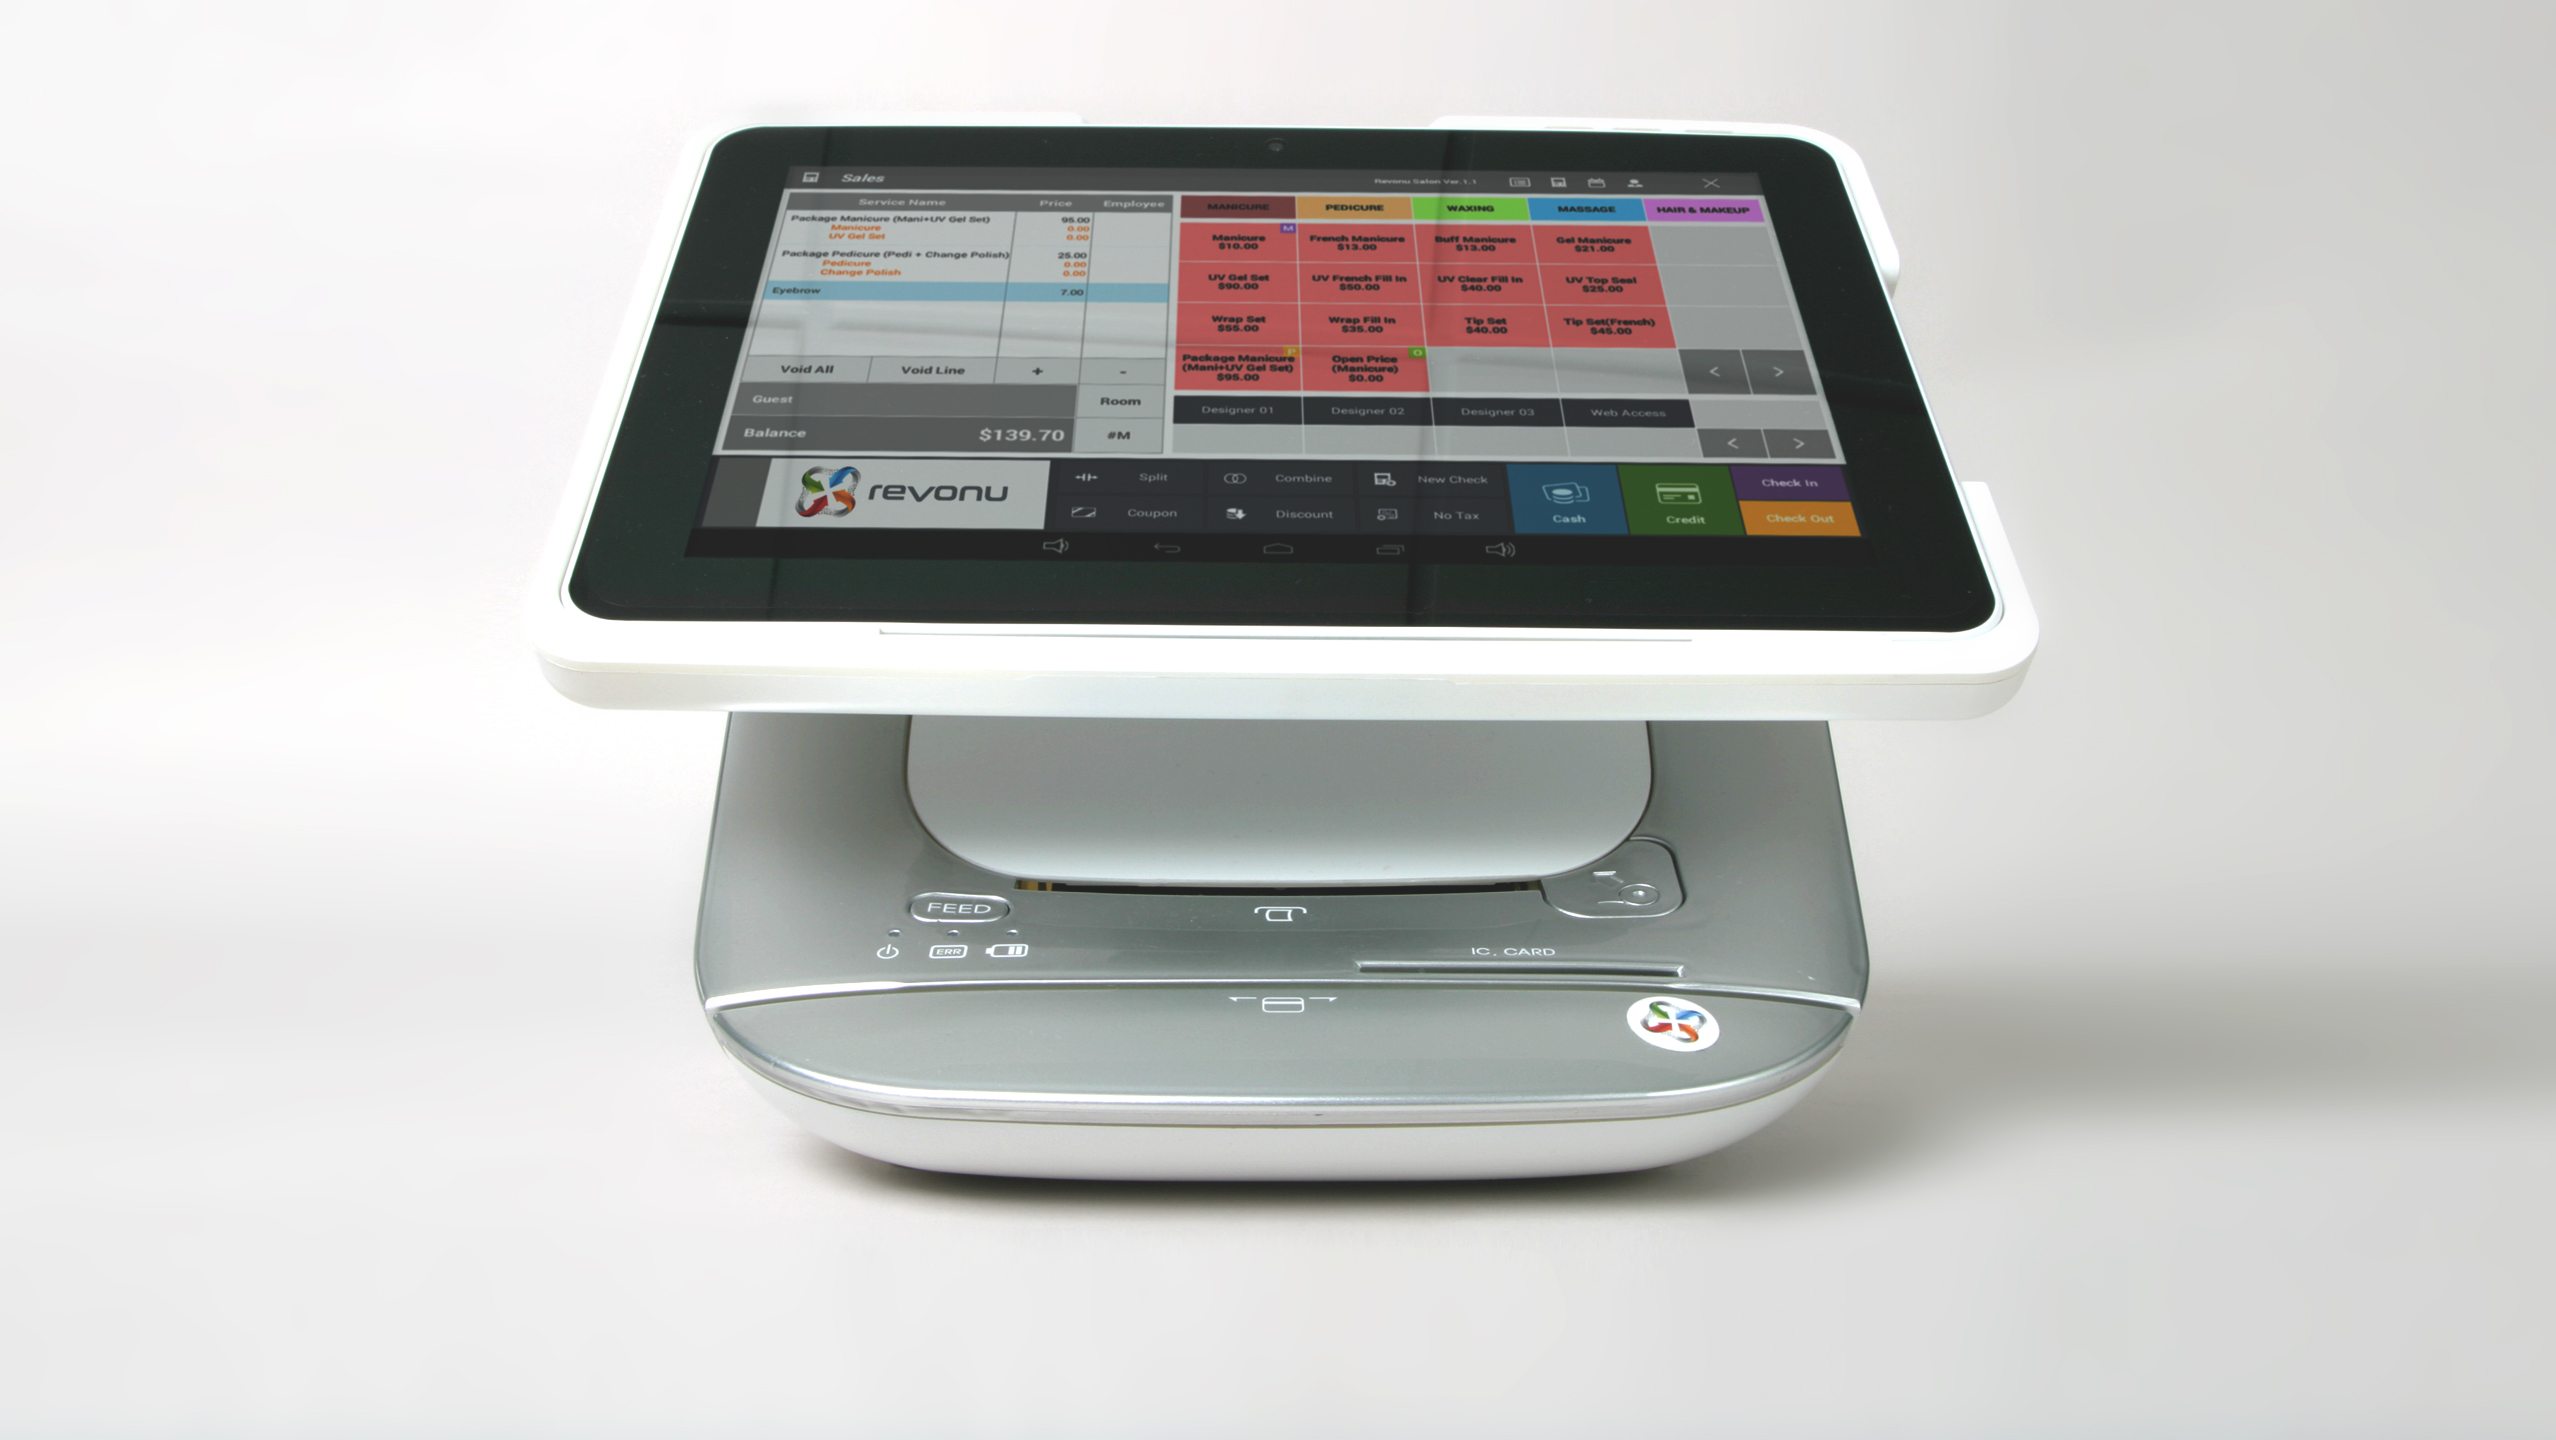 A white revonu point-of-sale system showing android tablet with restaurant pos software running.